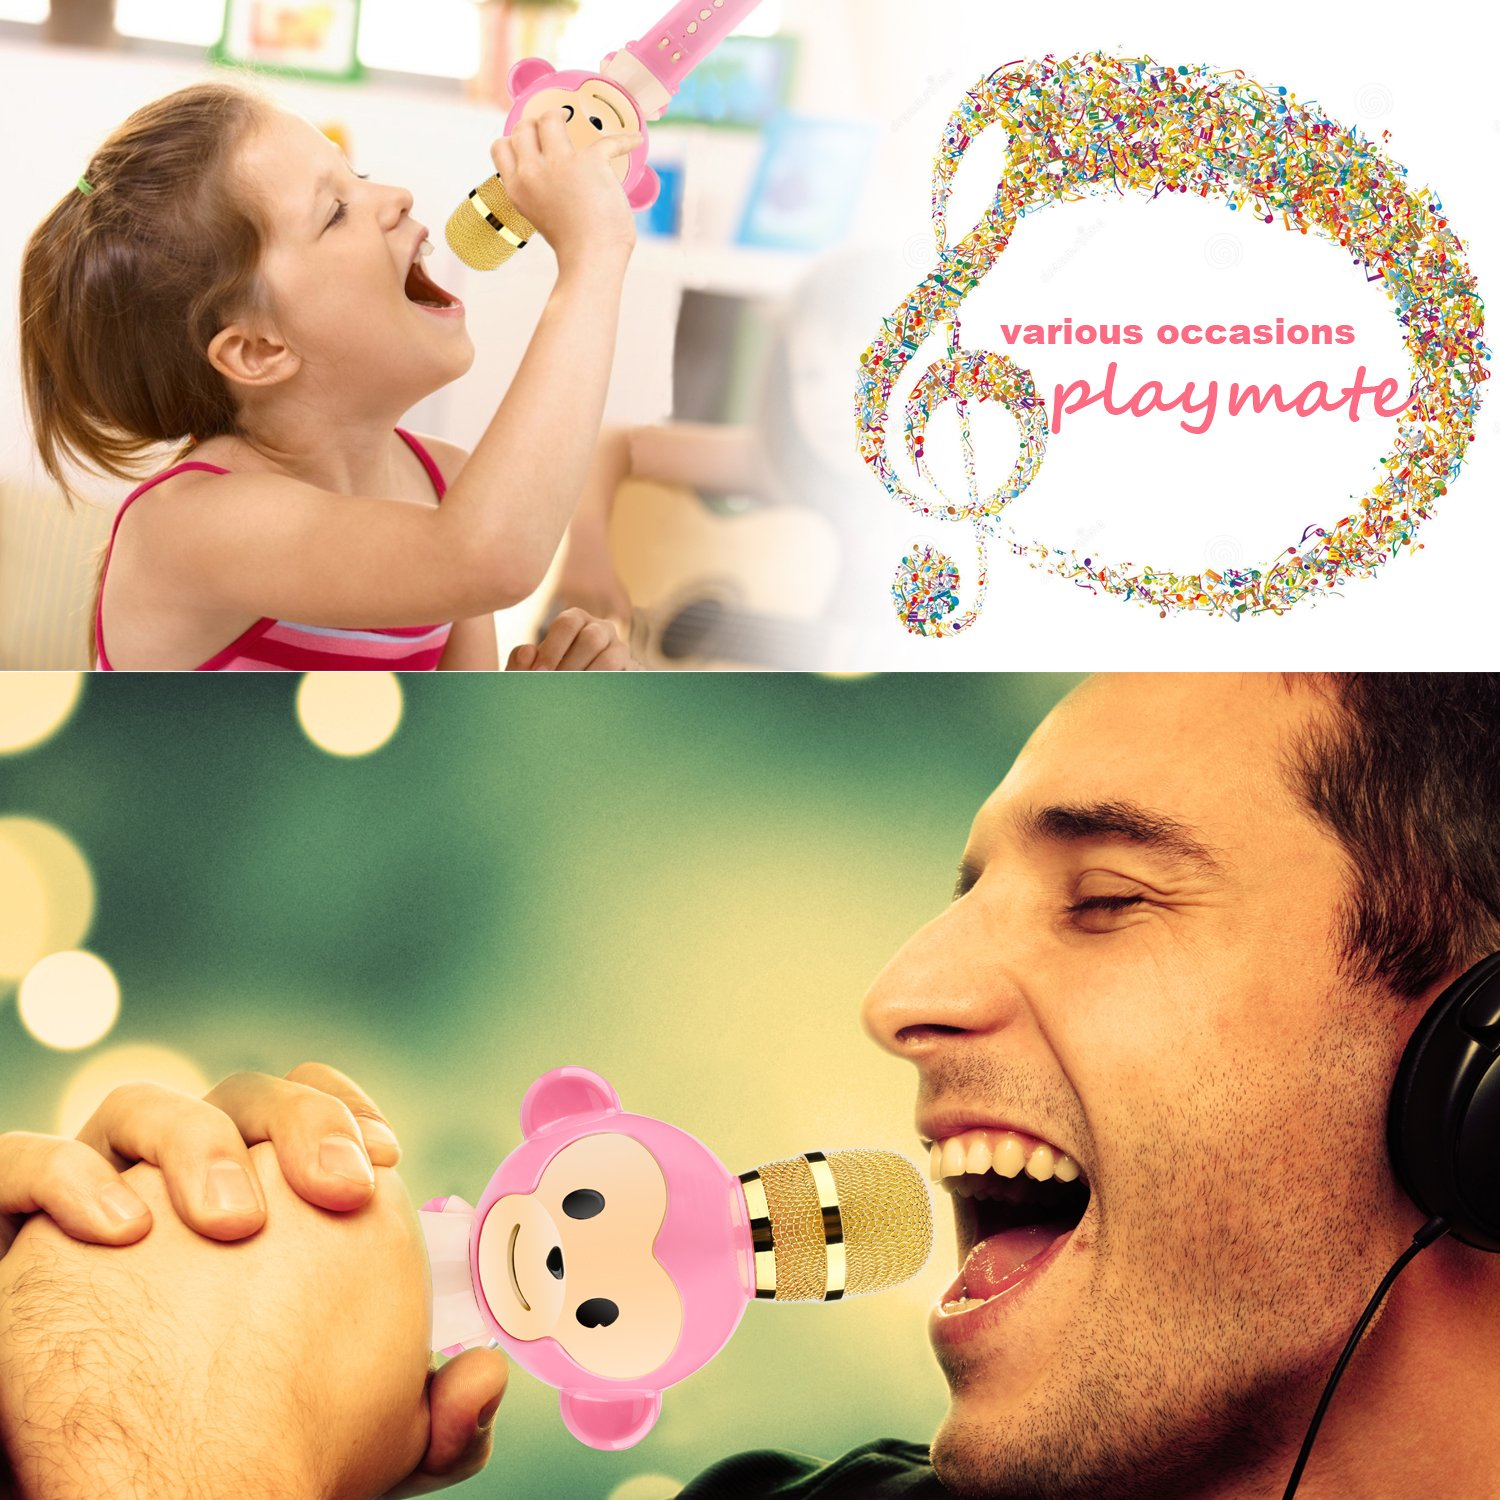 Microphone for Kids Children Karaoke Microphone Bluetooth Wireless Microphone Portable Handheld Karaoke Machine Toys Gifts Singing Recording Home KTV Party iPhone Android PC Smartphone (Pink) by Seelin (Image #6)